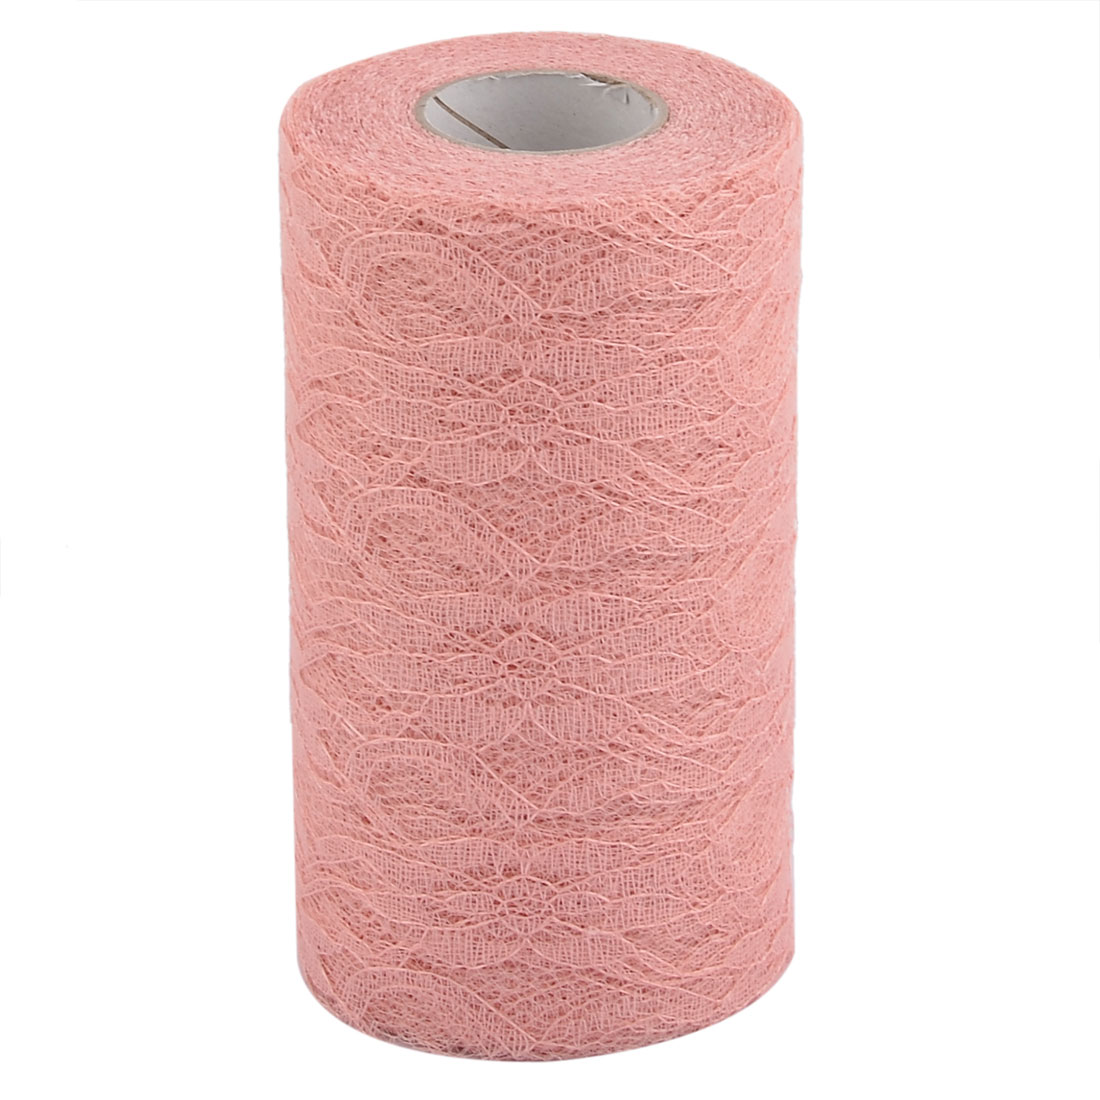 Party Lace Banquet Hall DIY Decor Tulle Spool Roll Coral Pink 6 Inch x 25 Yards